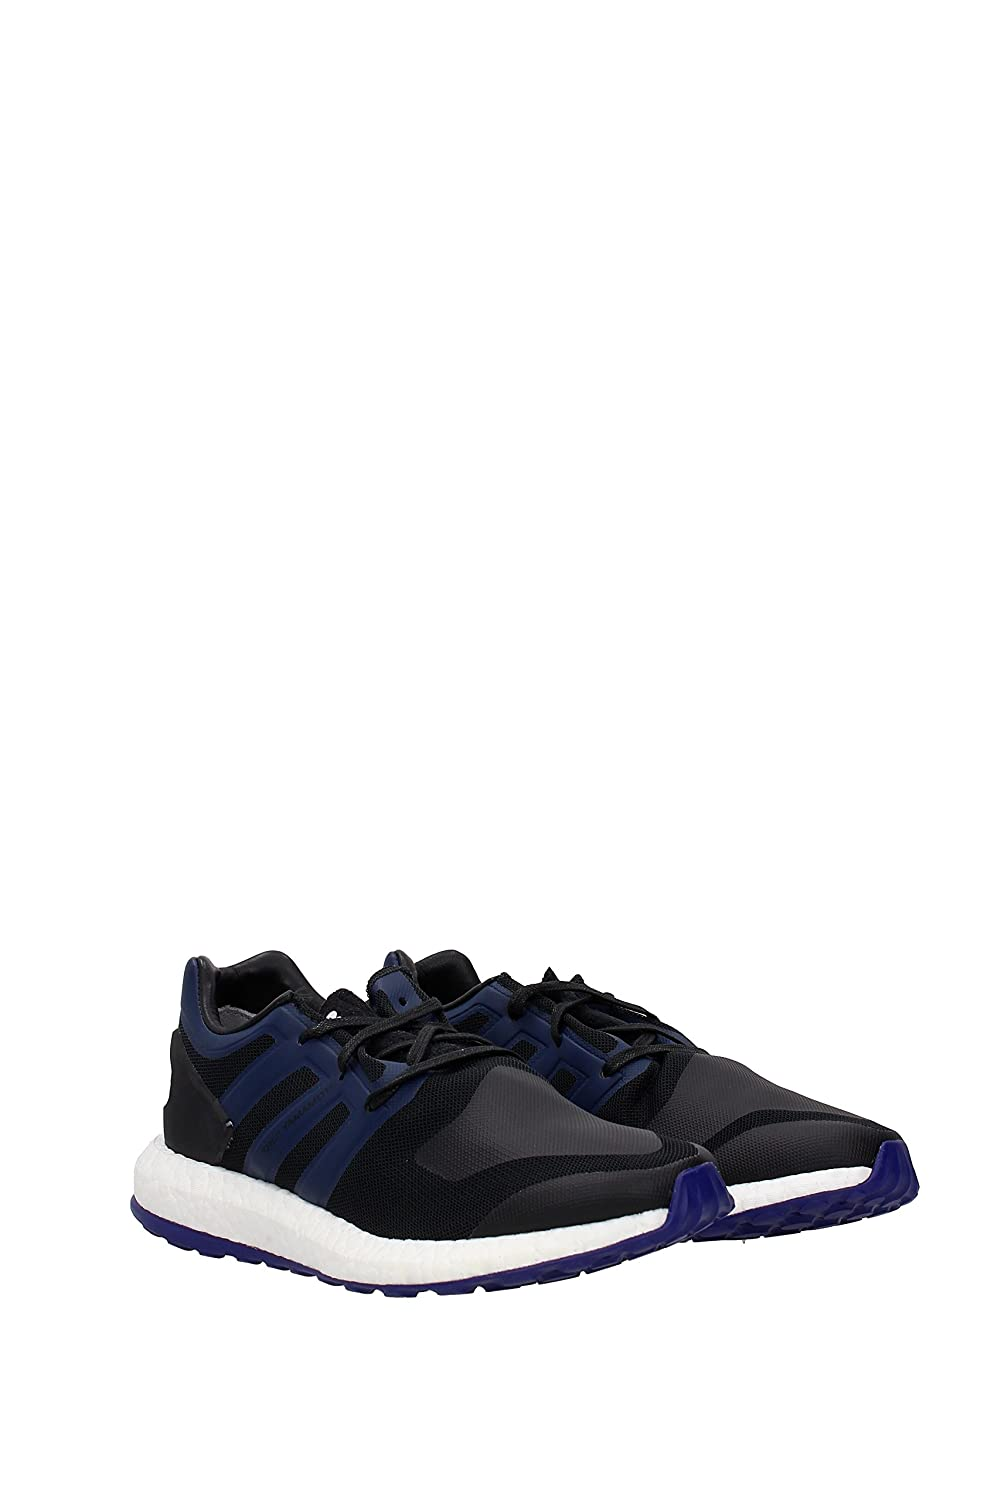 3d5cd8cdd74ec ... adidas y-3 pure boost